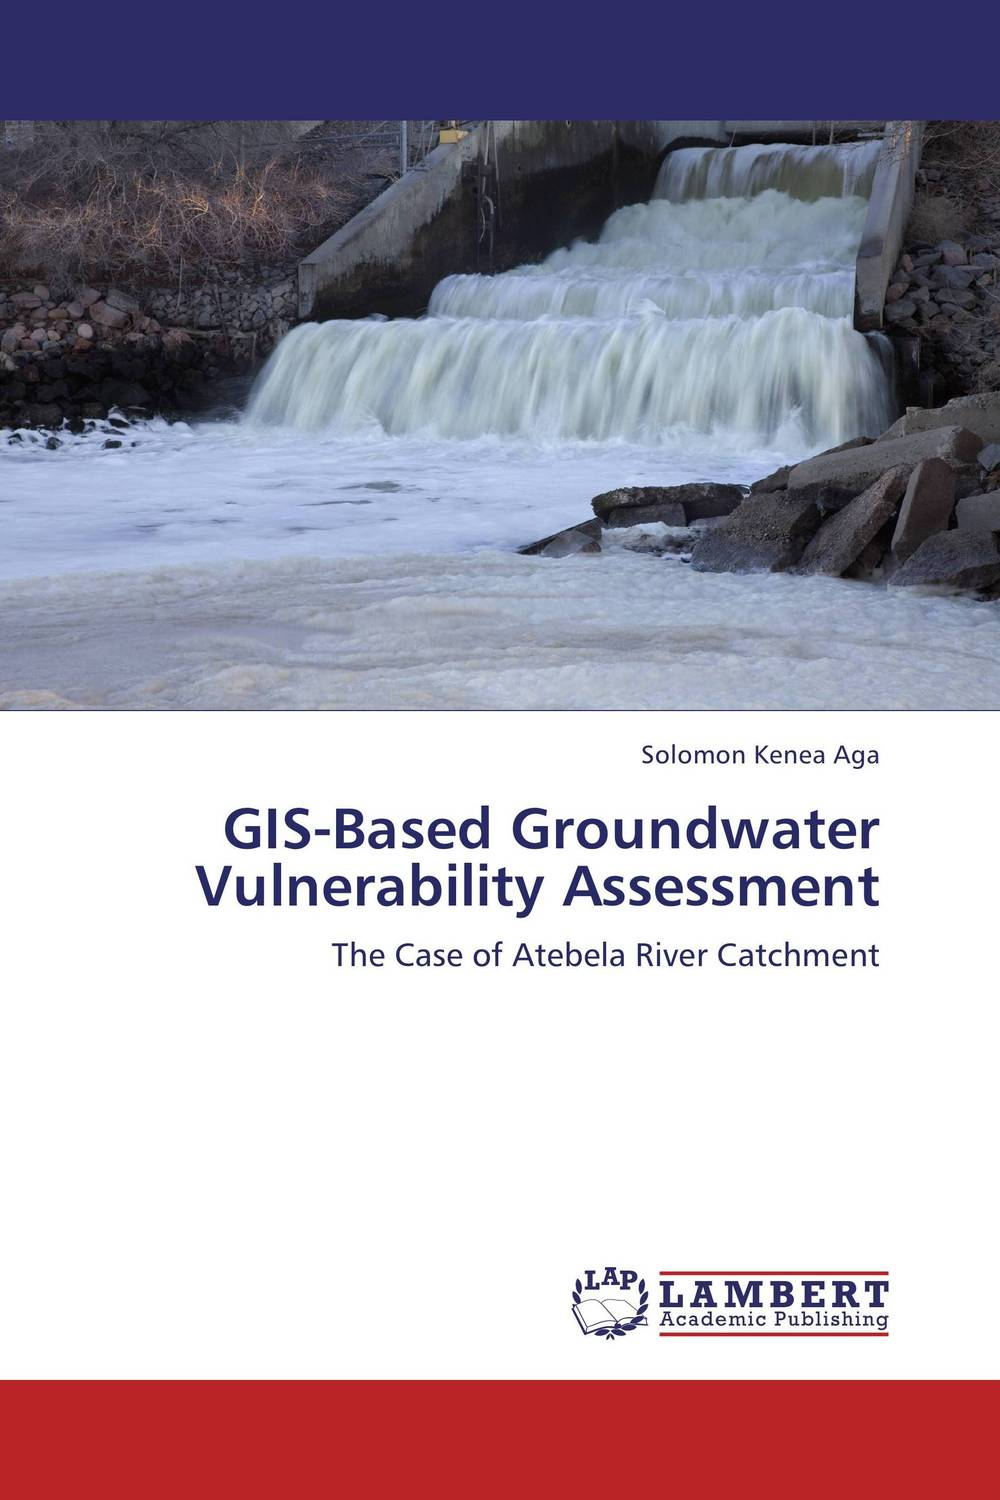 GIS-Based Groundwater Vulnerability Assessment polluted groundwater utilization